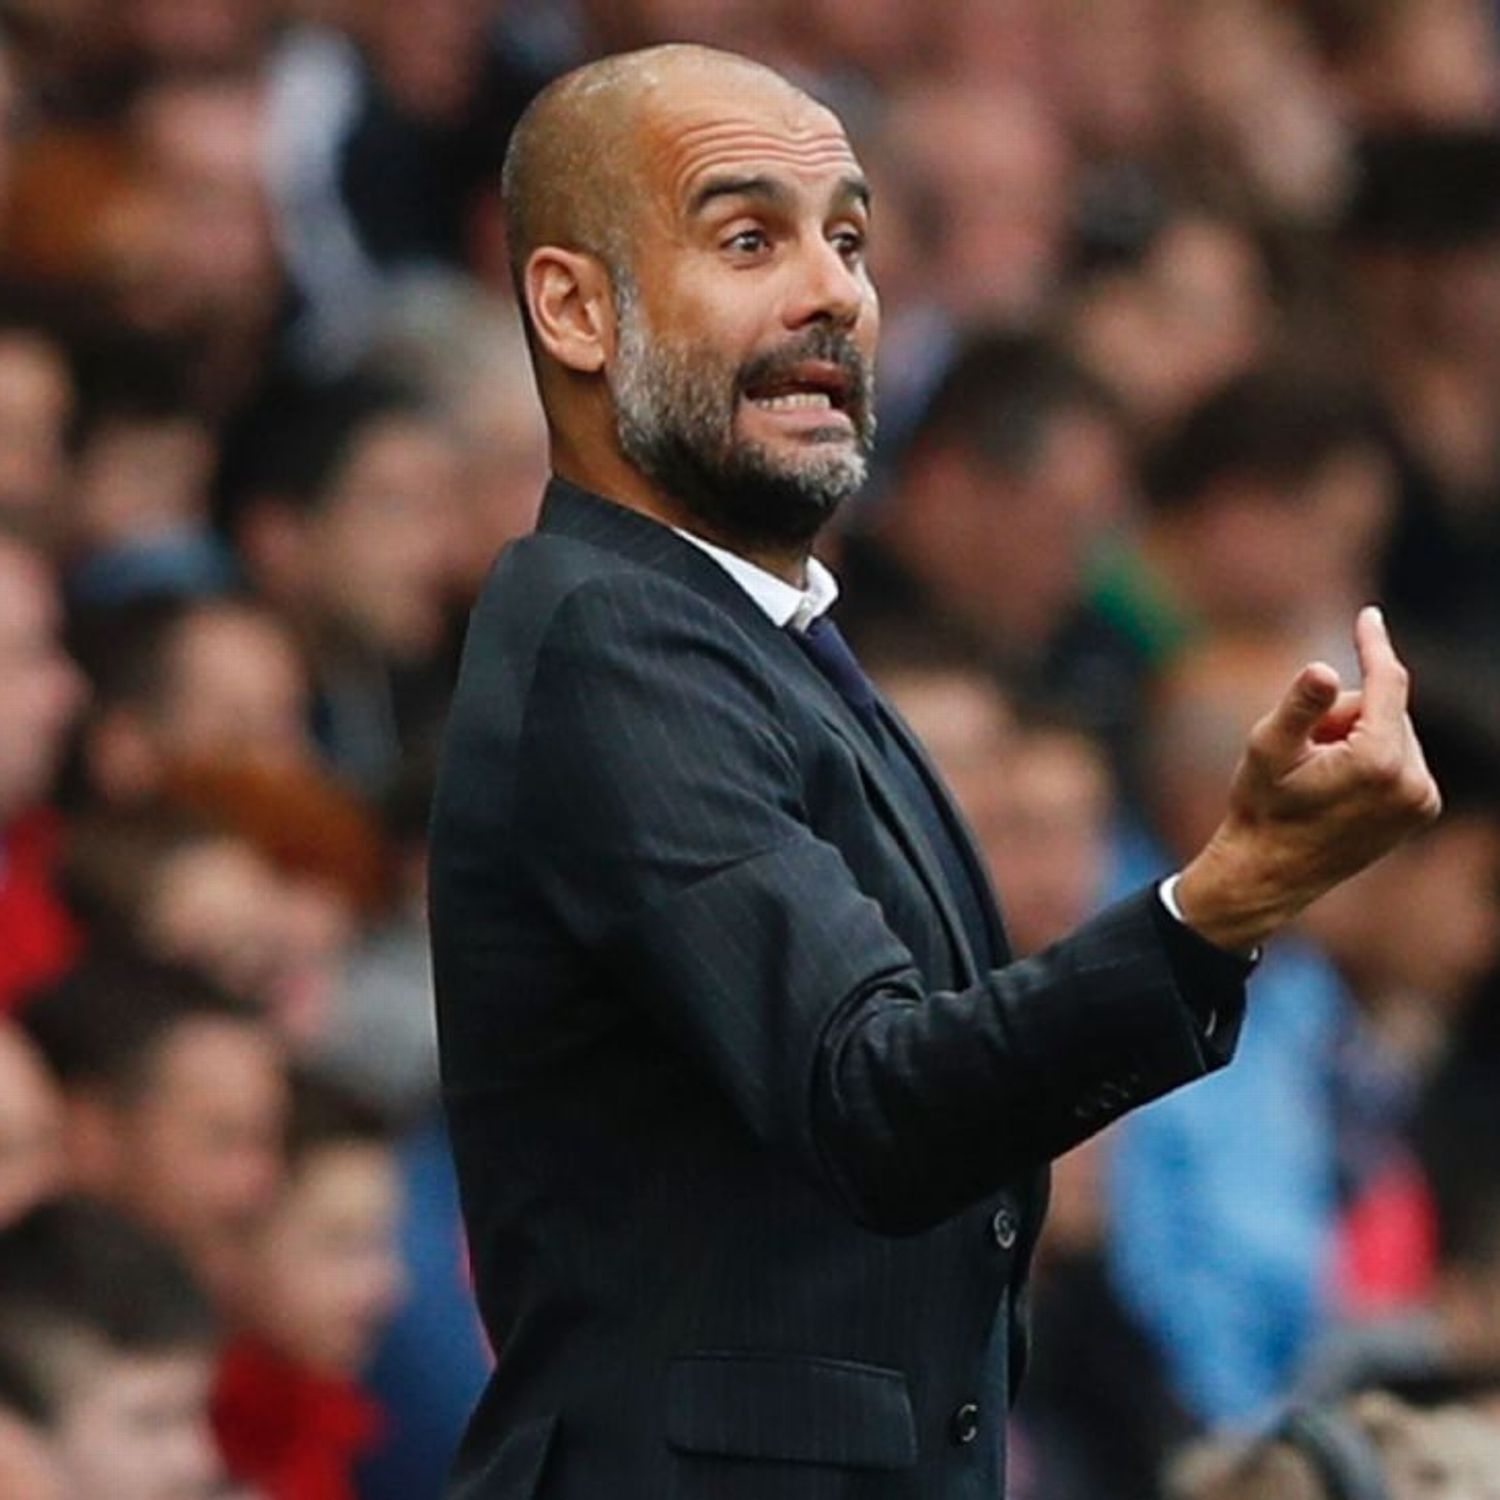 Man City's Pep Guardiola will be 'spoilt for choice' by young talent - Wilcox